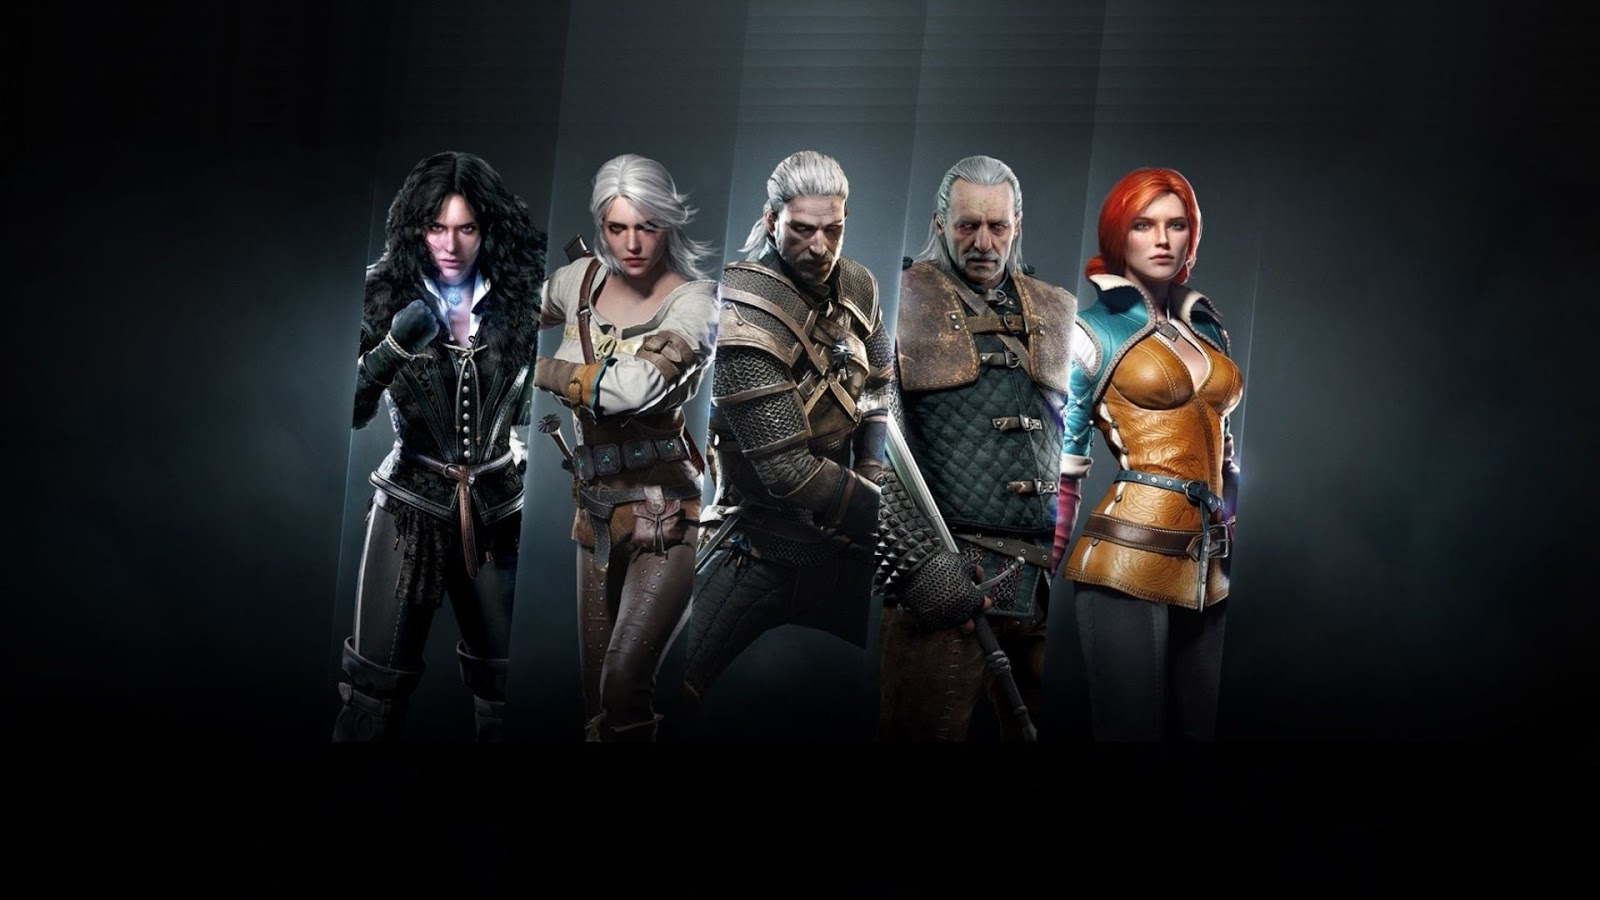 Witcher-wallpaper-for-laptop